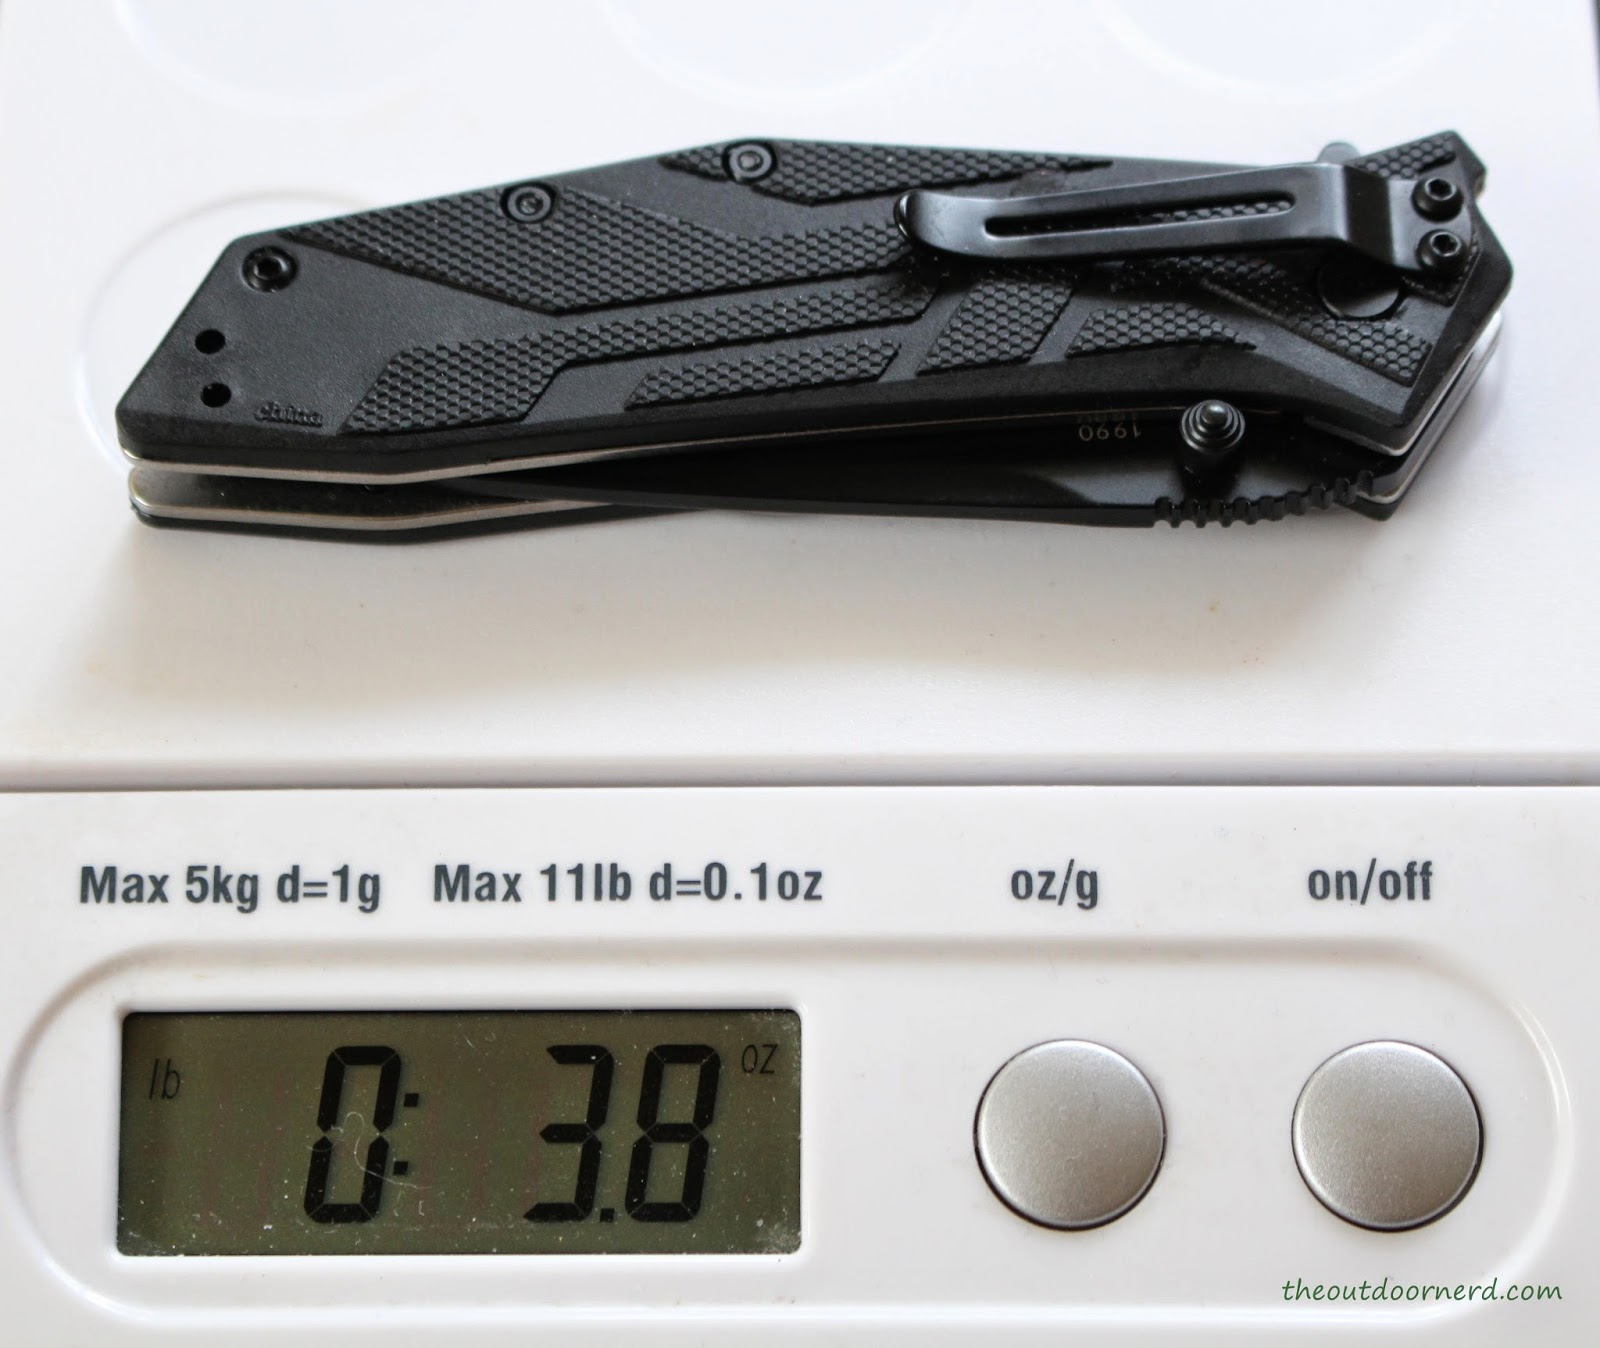 Kershaw Brawler Pocket Knife On Scale